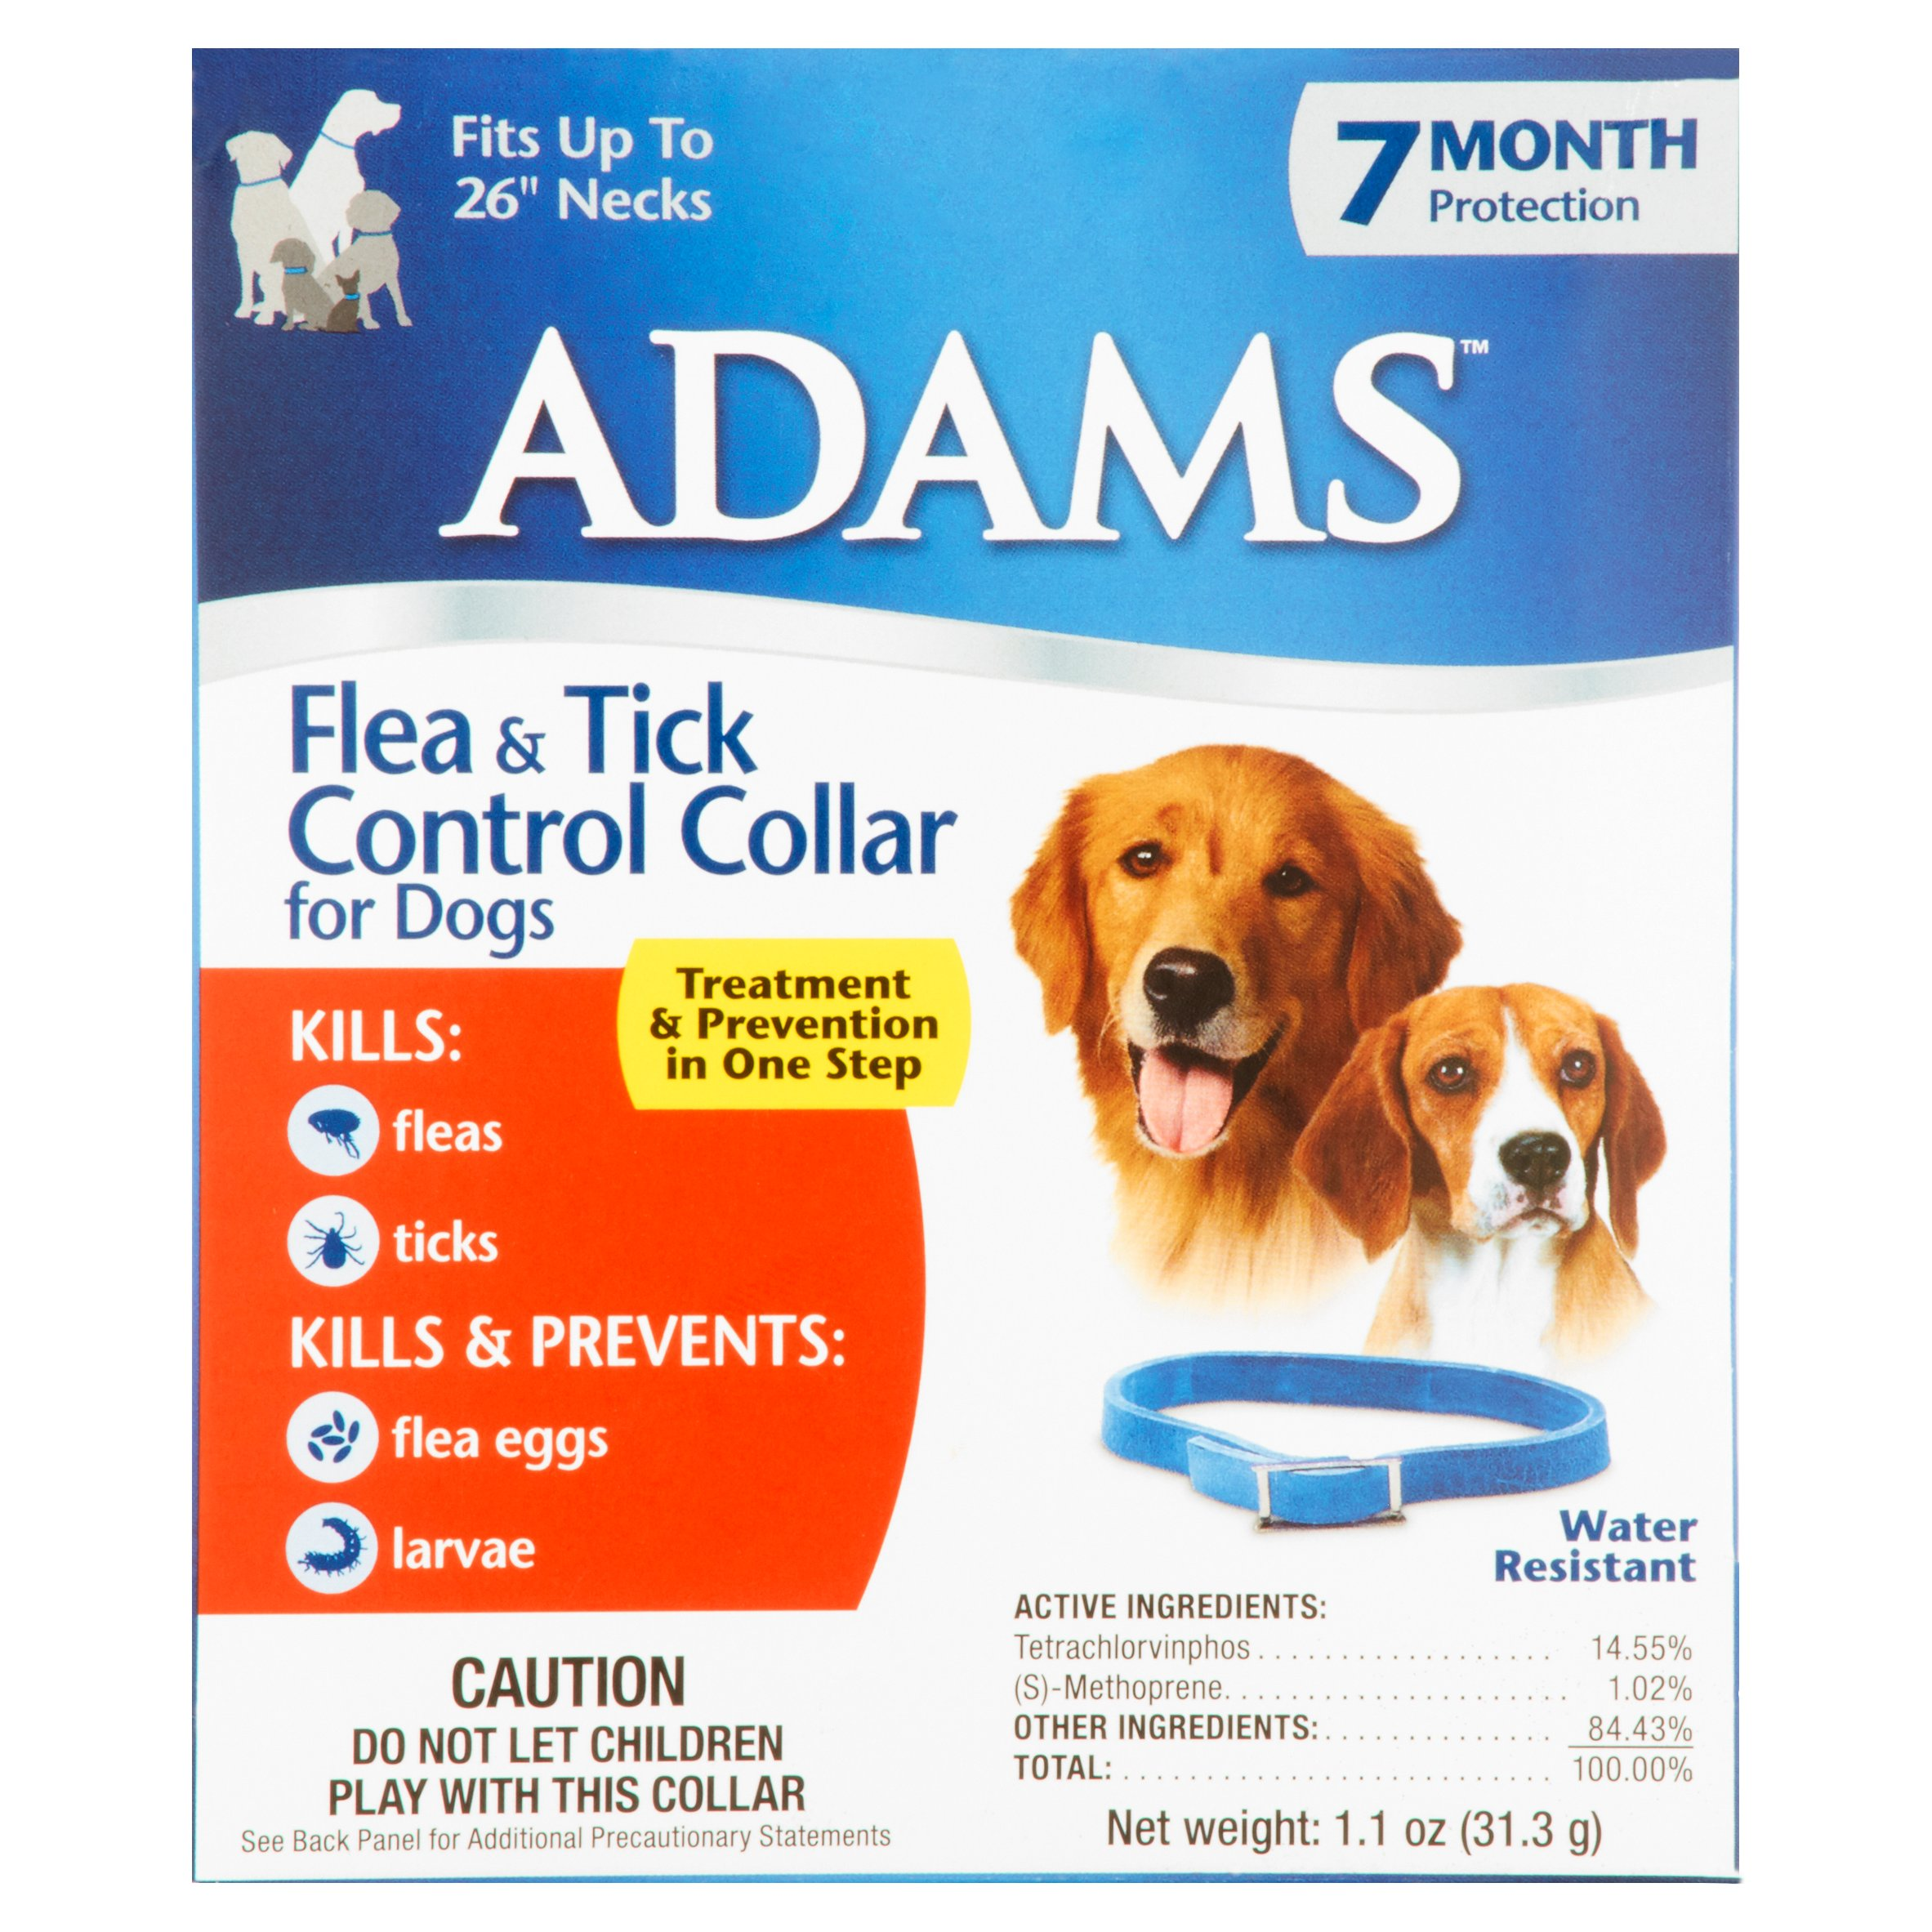 Adams Flea & Tick Control Collar for Dogs, ea by Central Garden and Pet Company